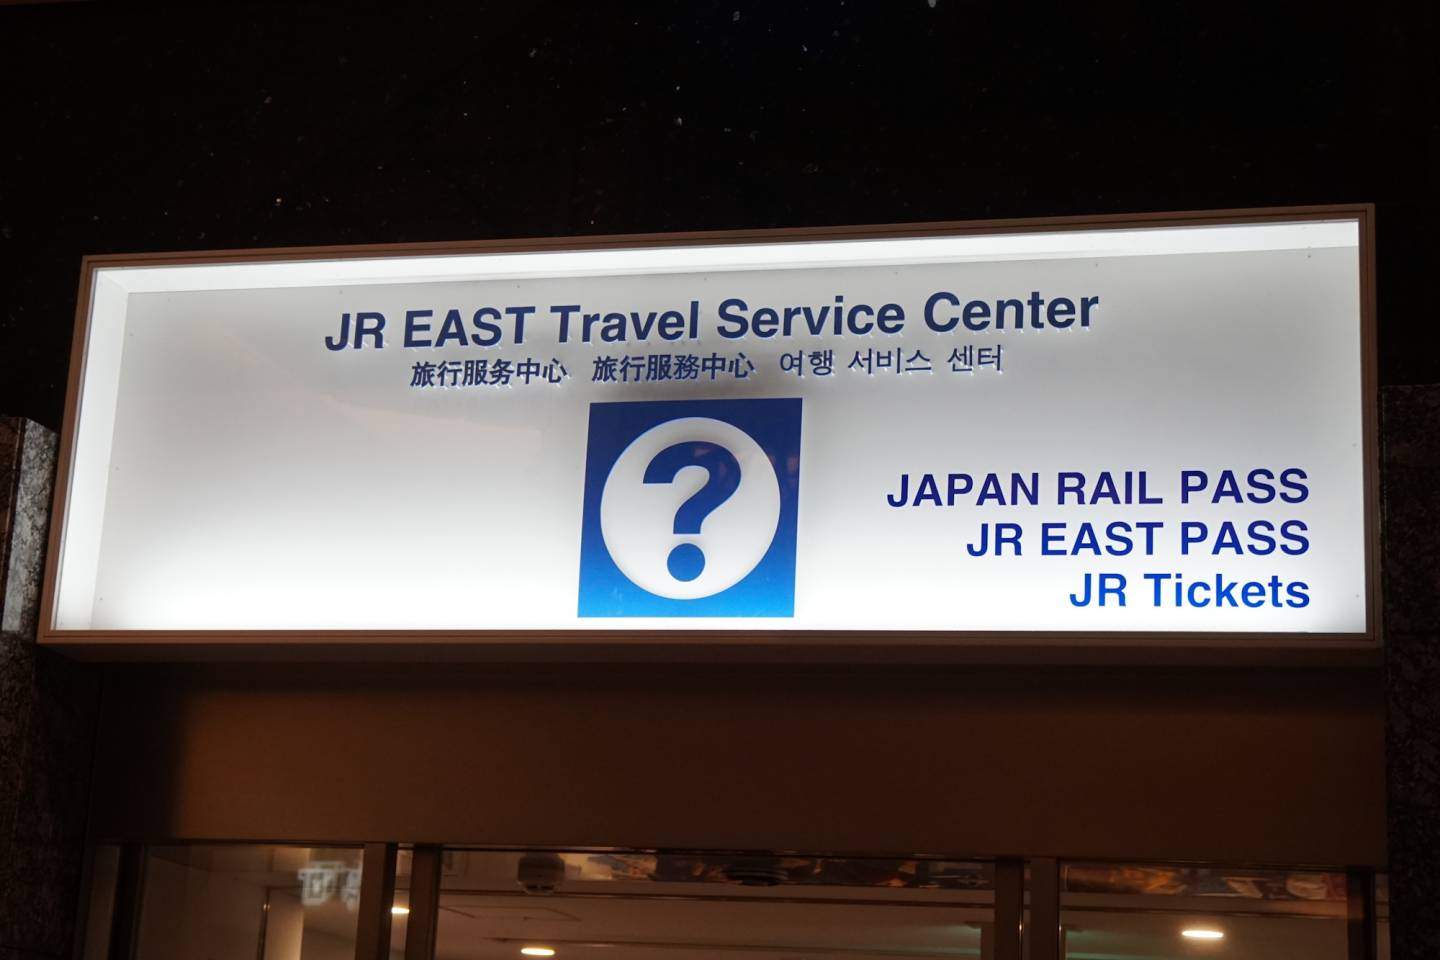 JR EAST Travel Center